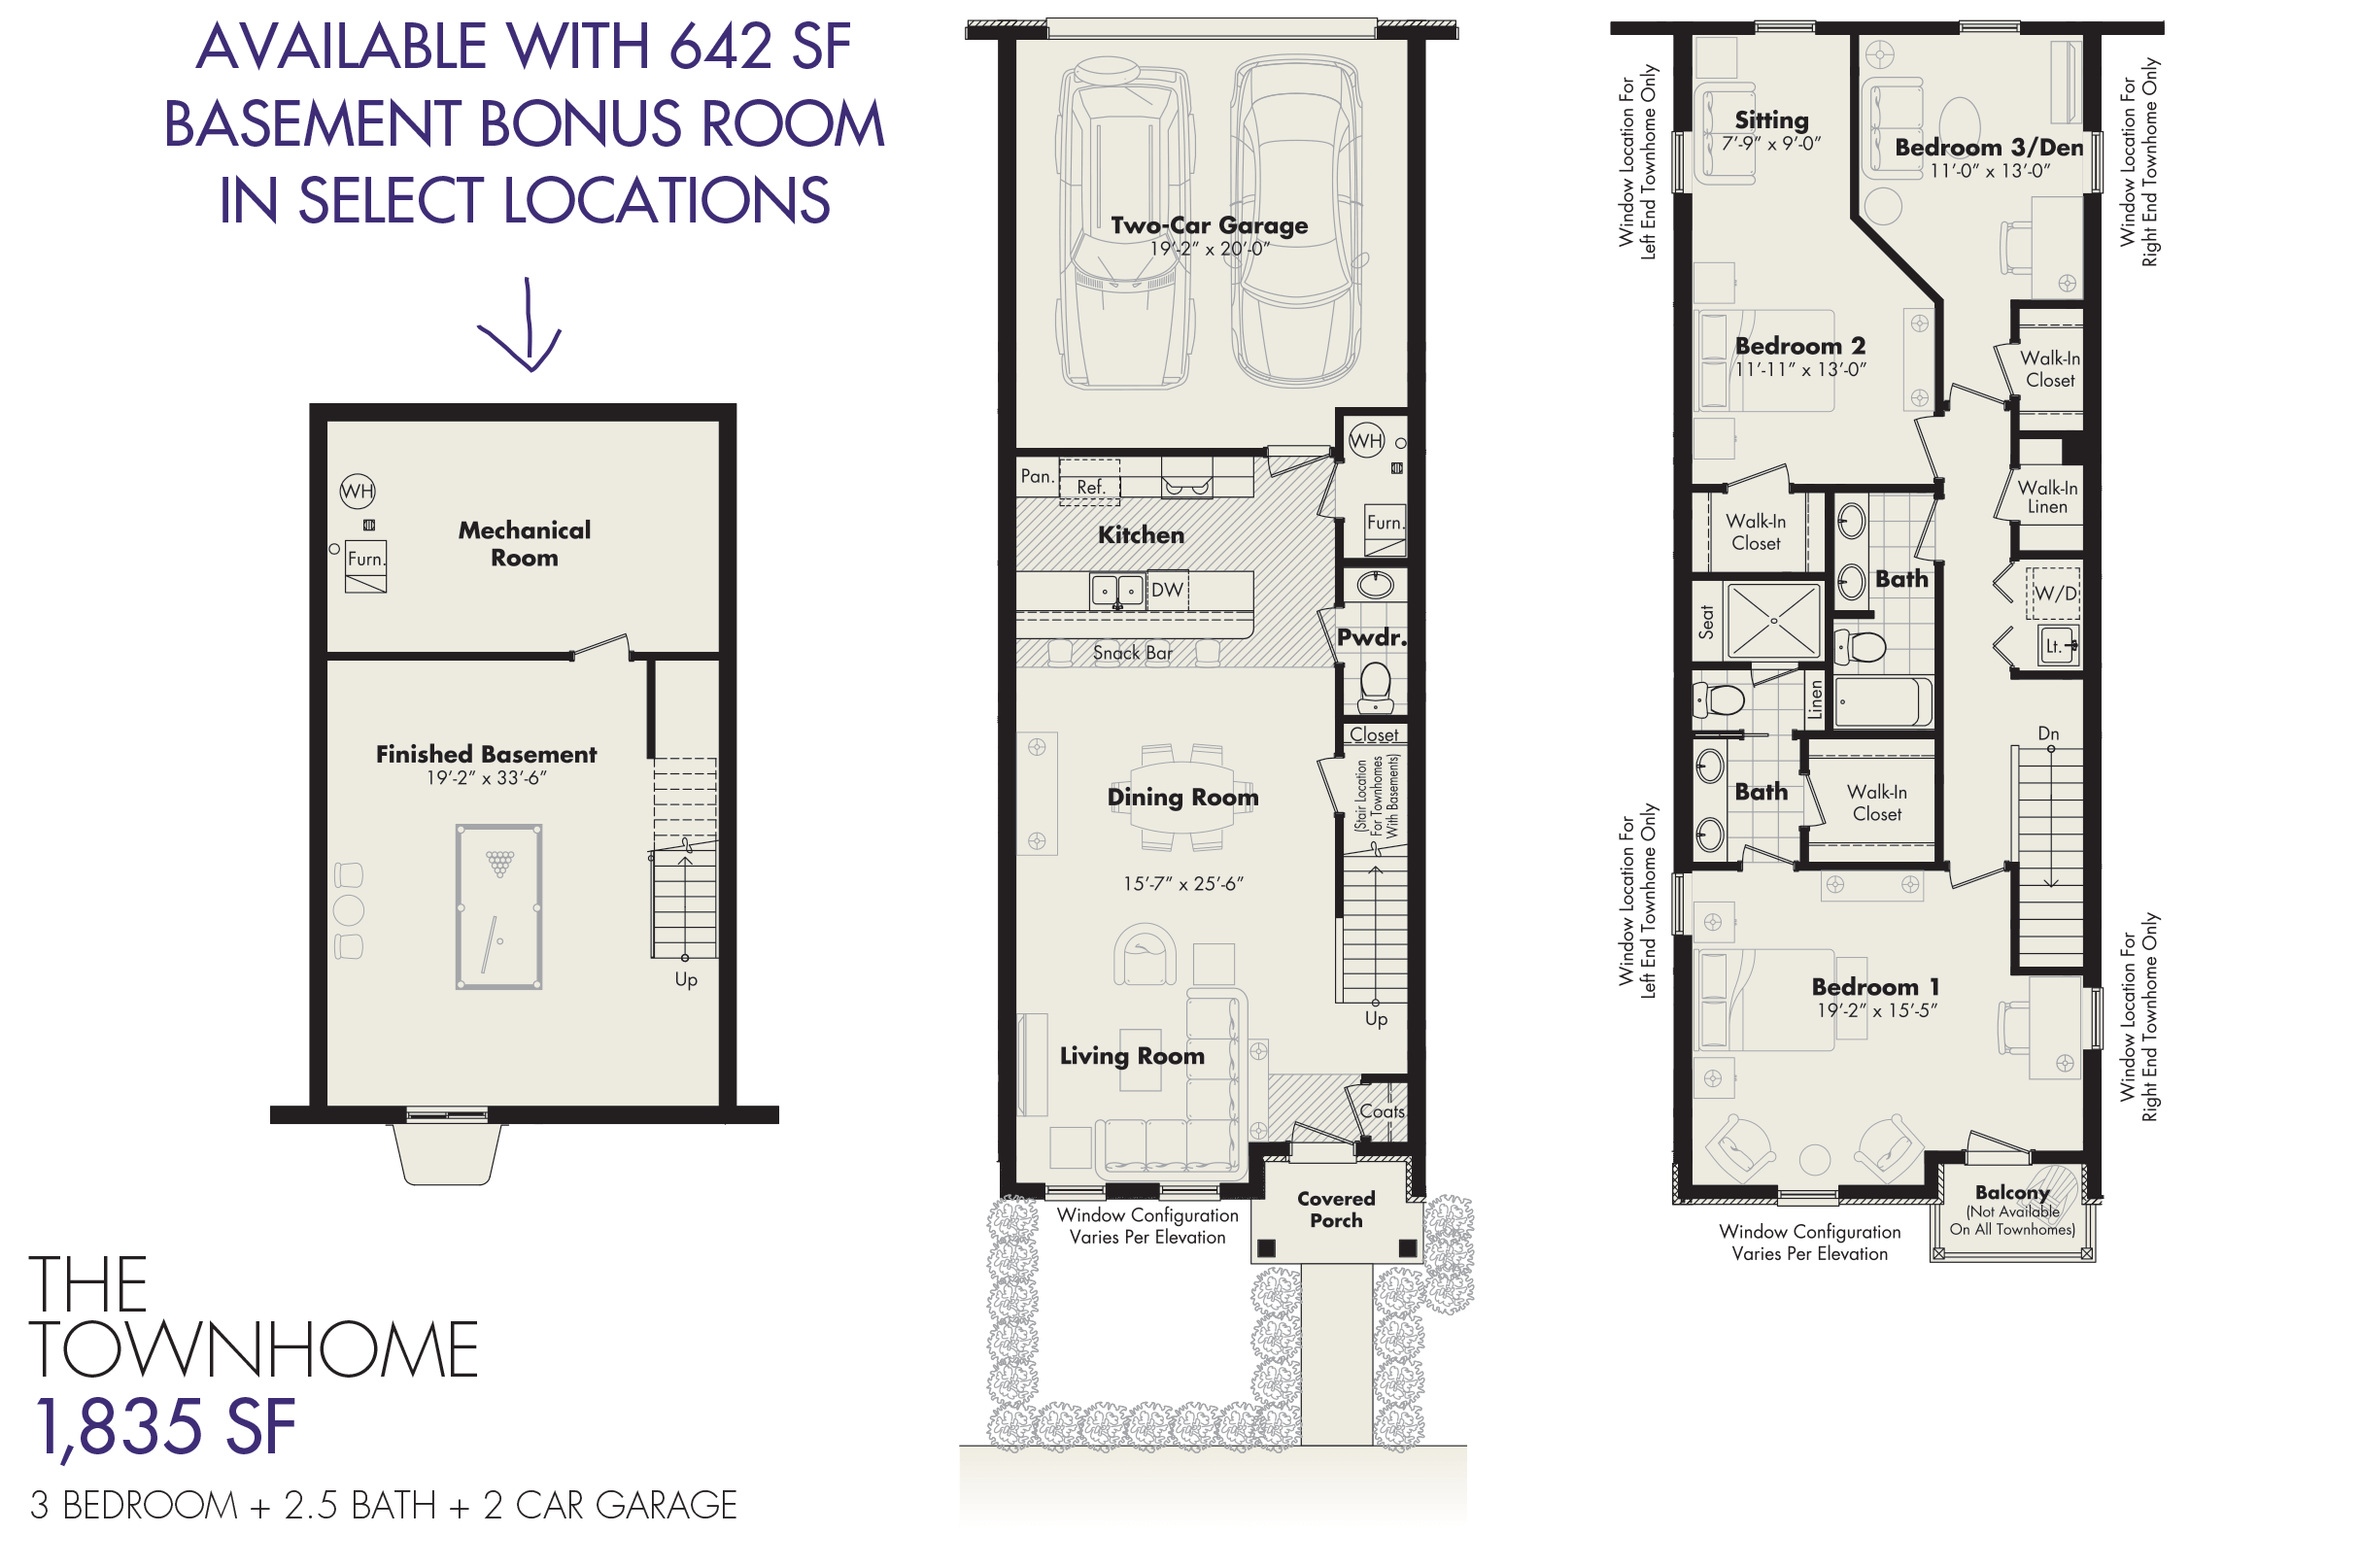 parkways luxe apartment homes